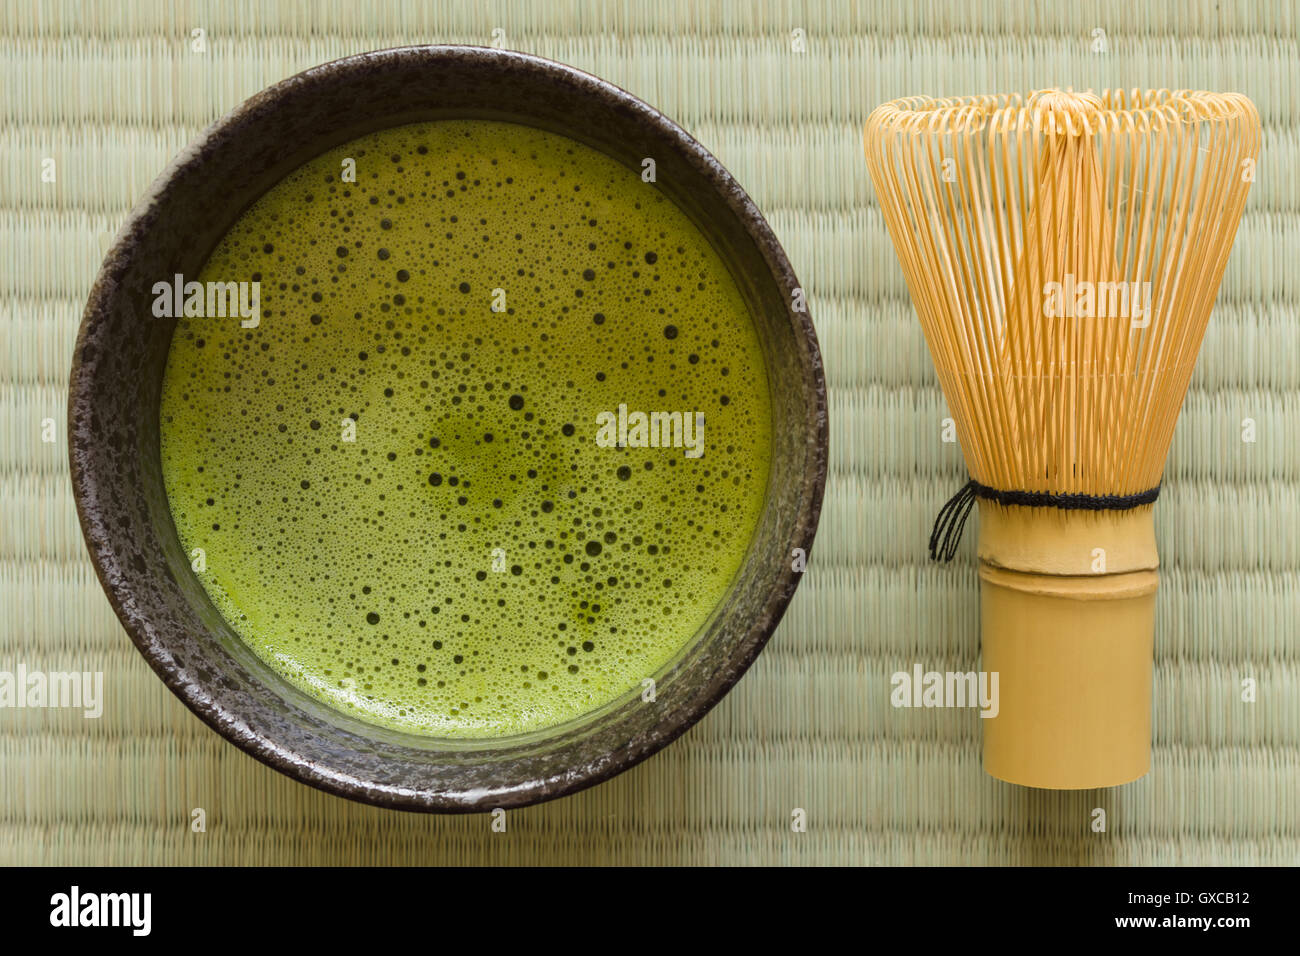 Japanese Matcha green tea in a chawan or traditional ceramic bowl with a chasen or bamboo whisk - Stock Image